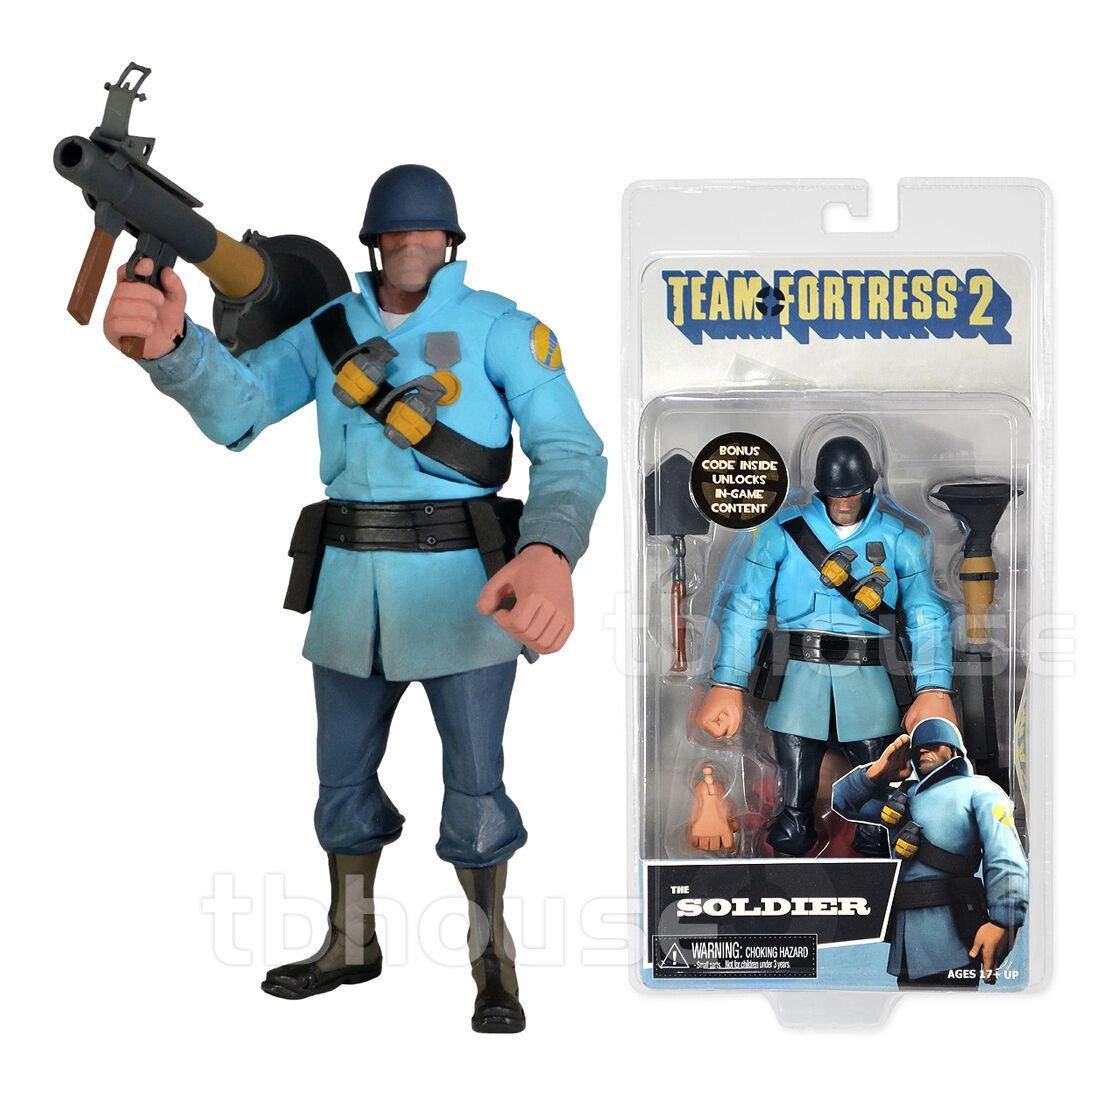 THE SOLDIER figure TEAM FORTRESS 2 Blau BLU EDITION neca SERIES 2 w/ BONUS CODE